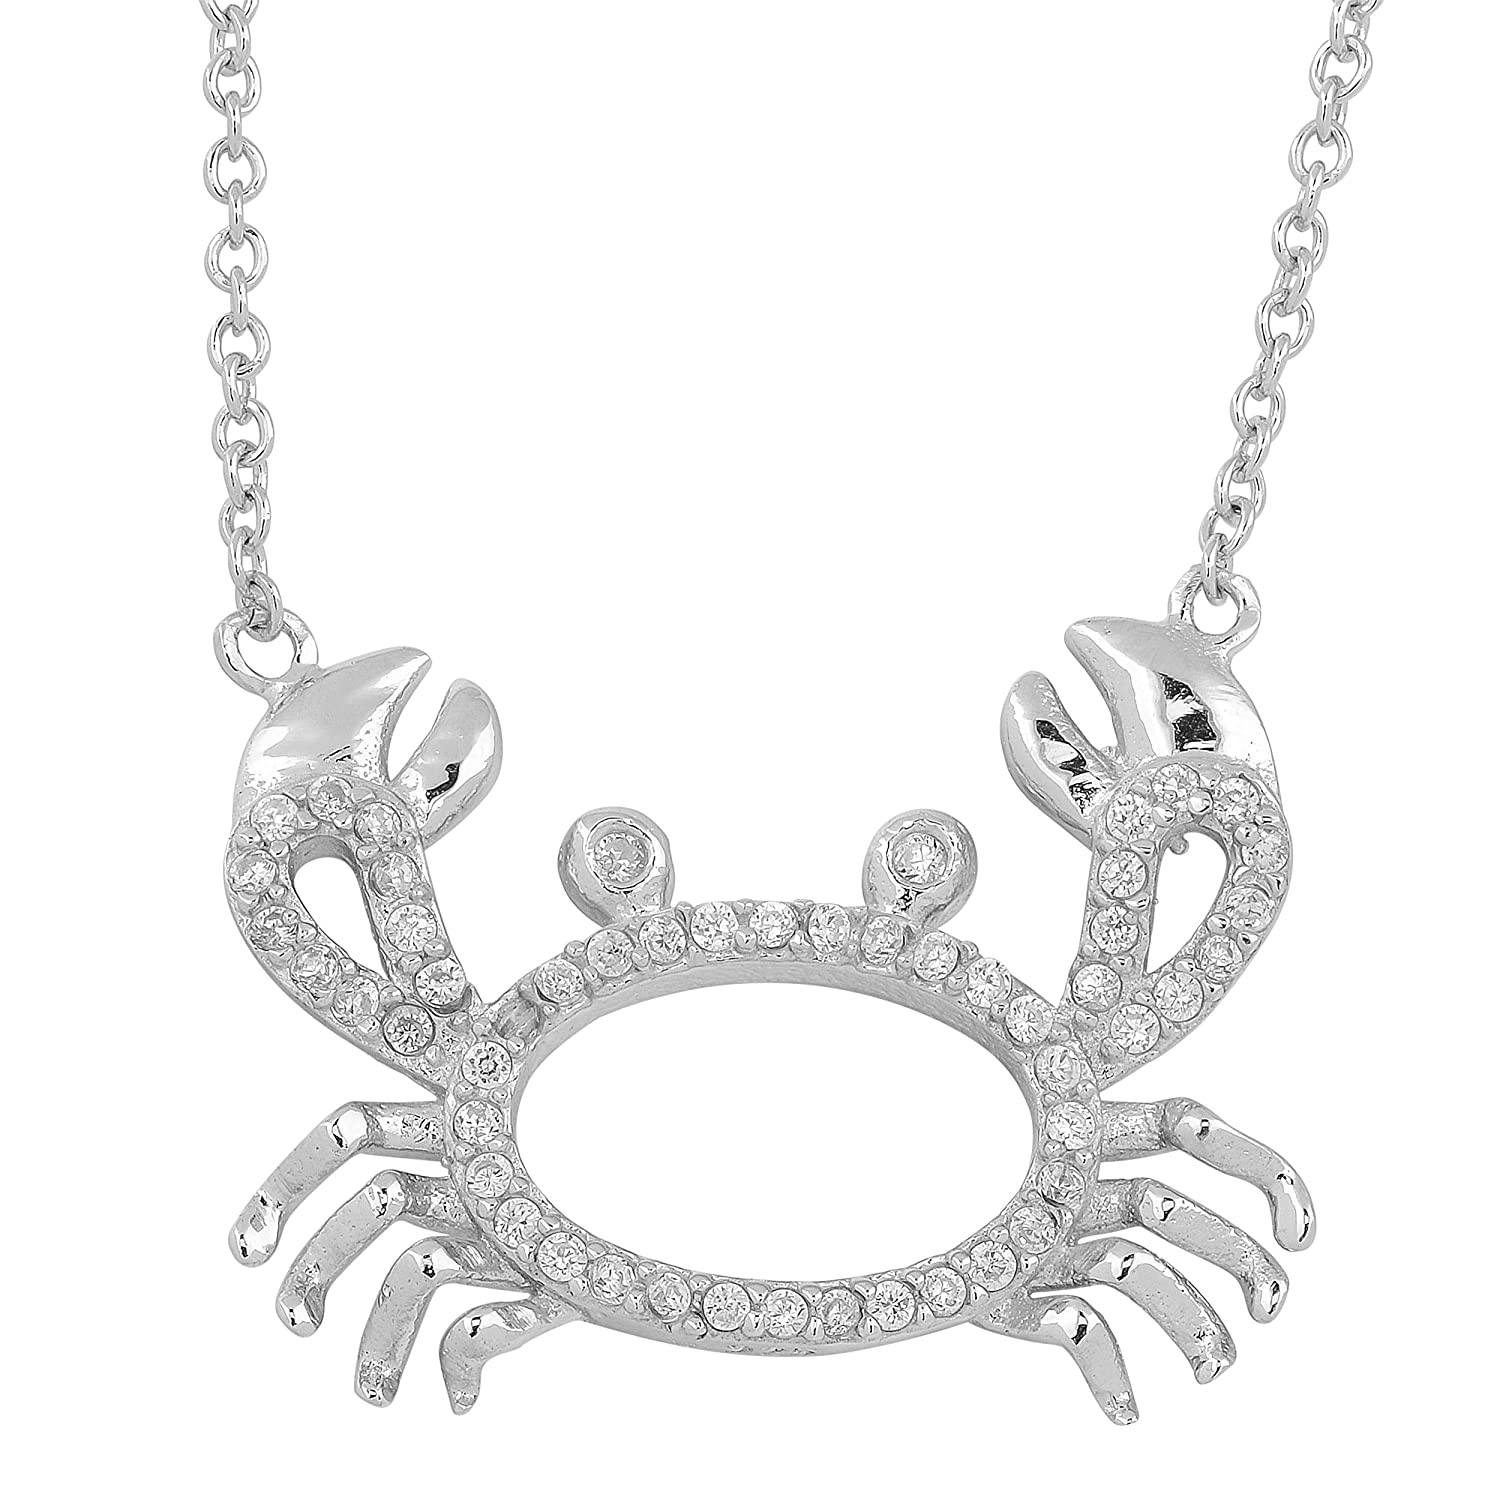 18 inch Kooljewelry Sterling Silver and Cubic Zirconia Crab Necklace